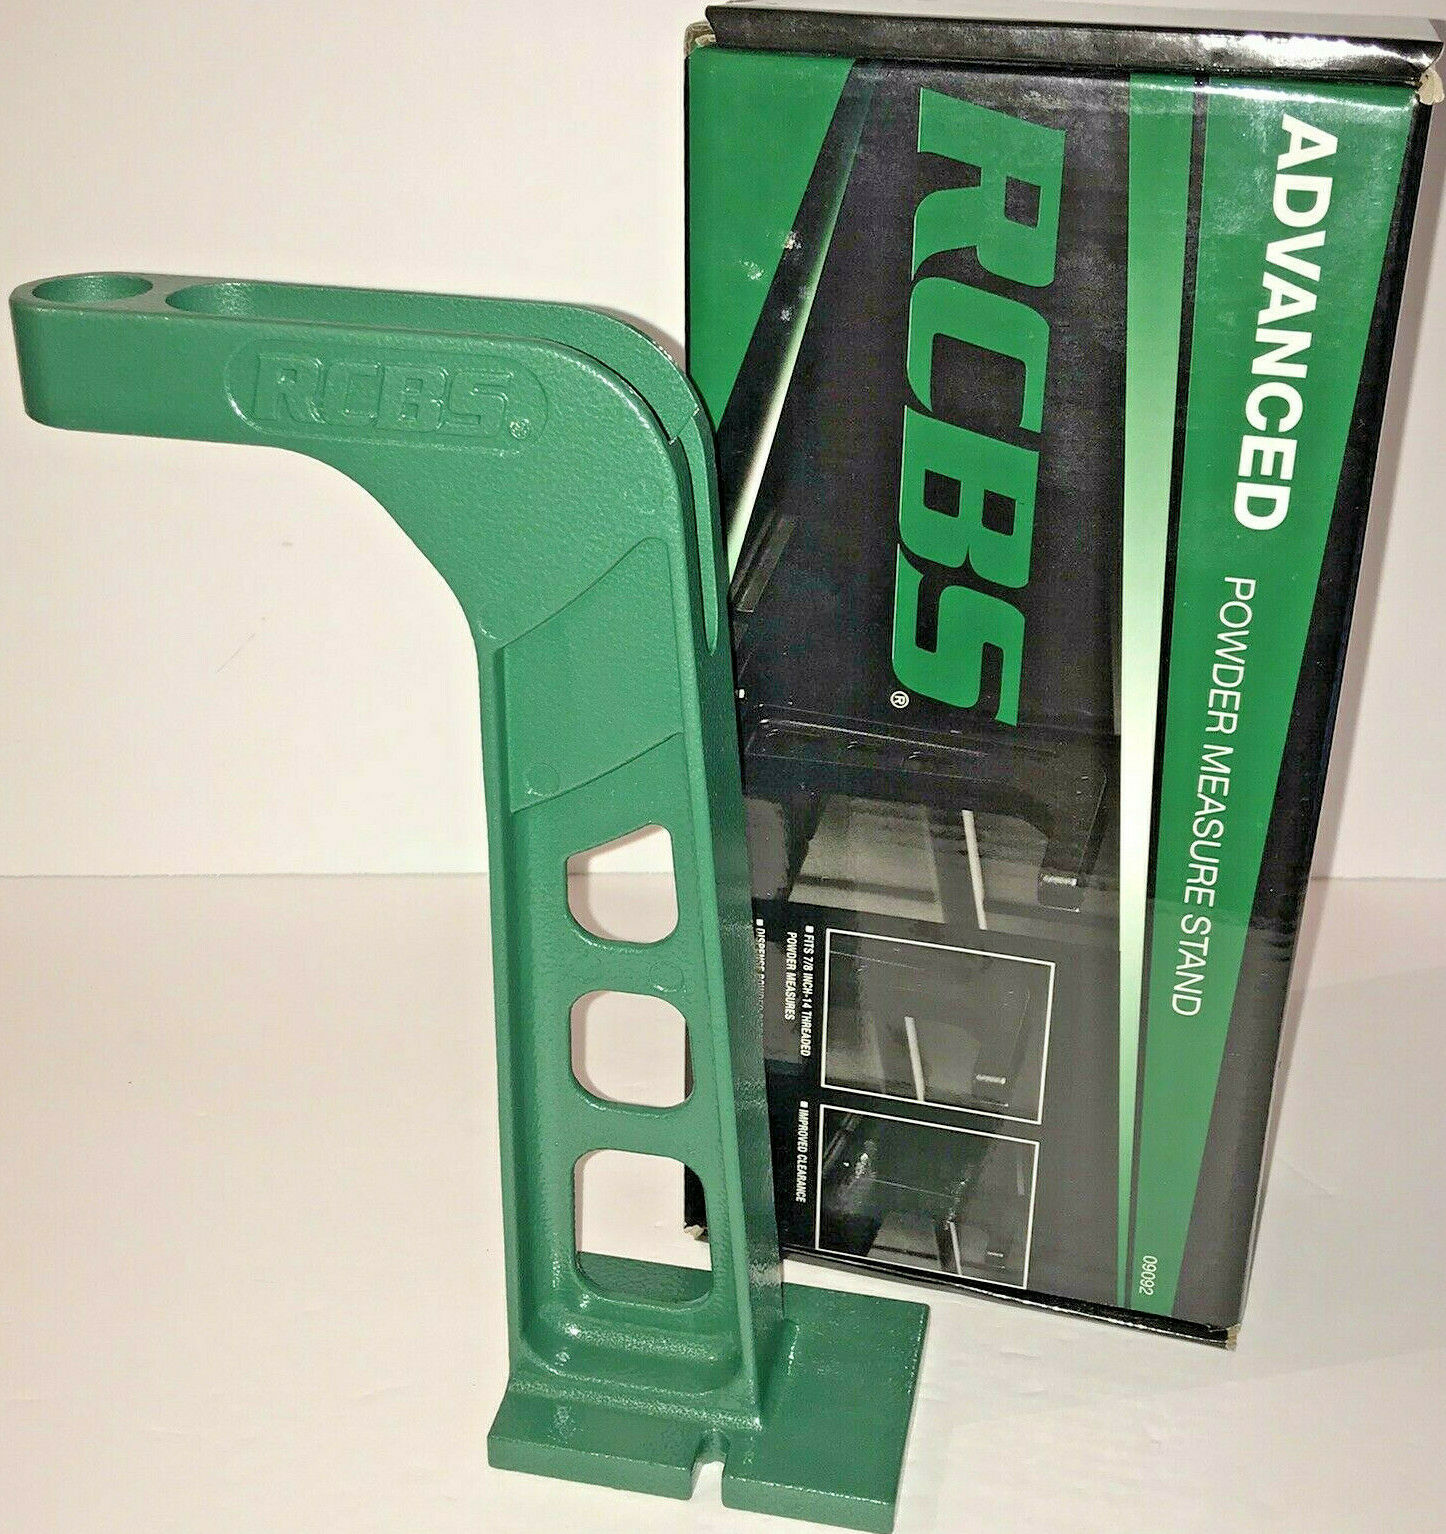 RCBS Advanced Powder Measure Stand 9092 for sale online